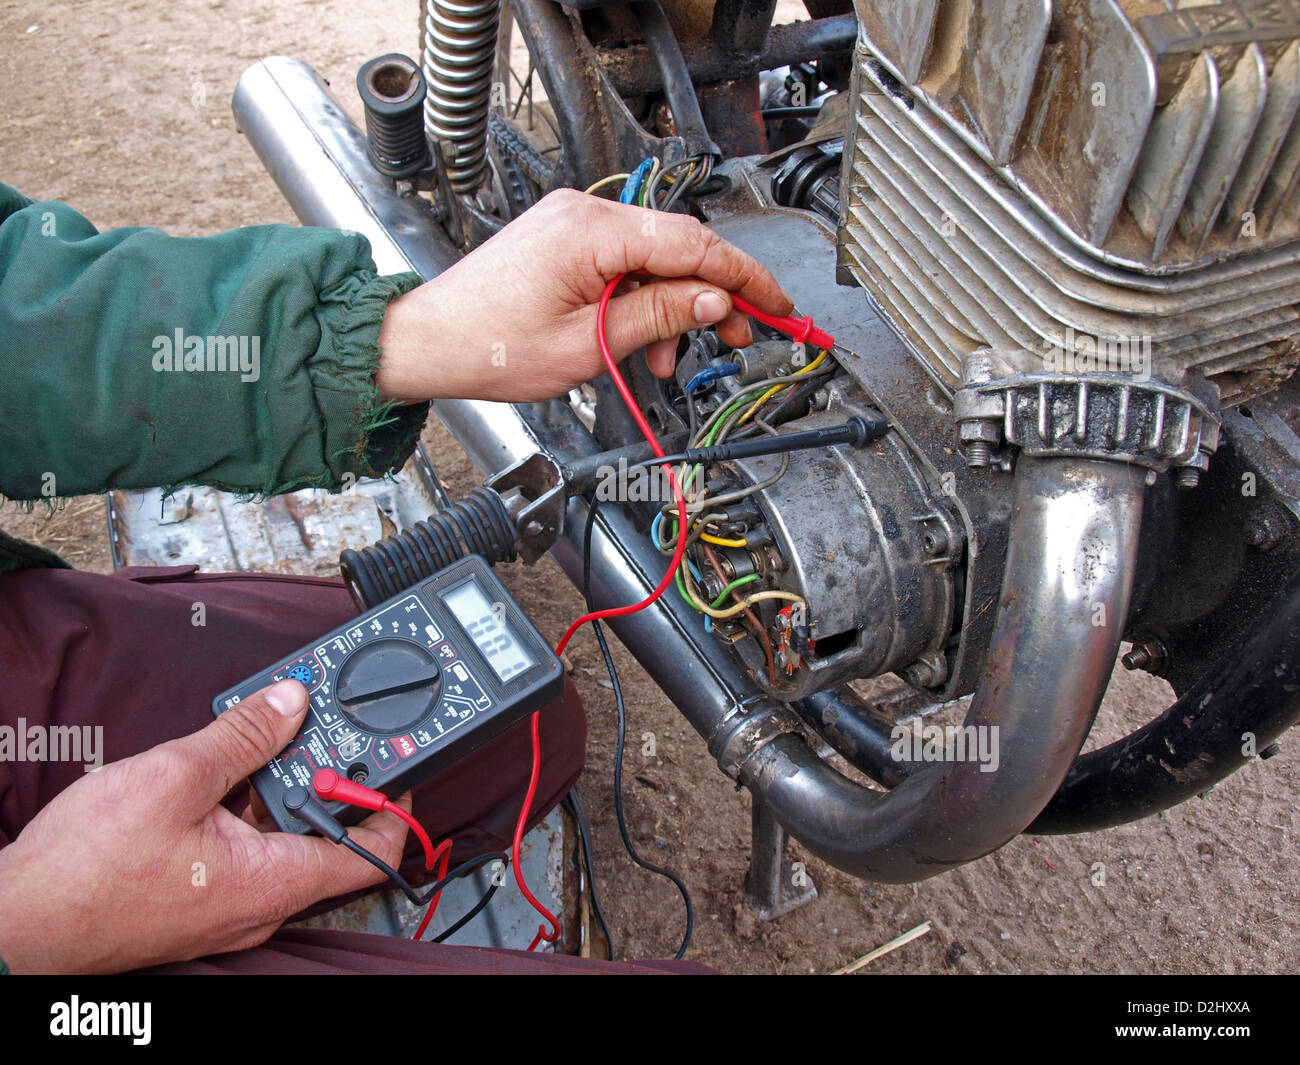 Young man with multimeter testing motorcycle engine - Stock Image